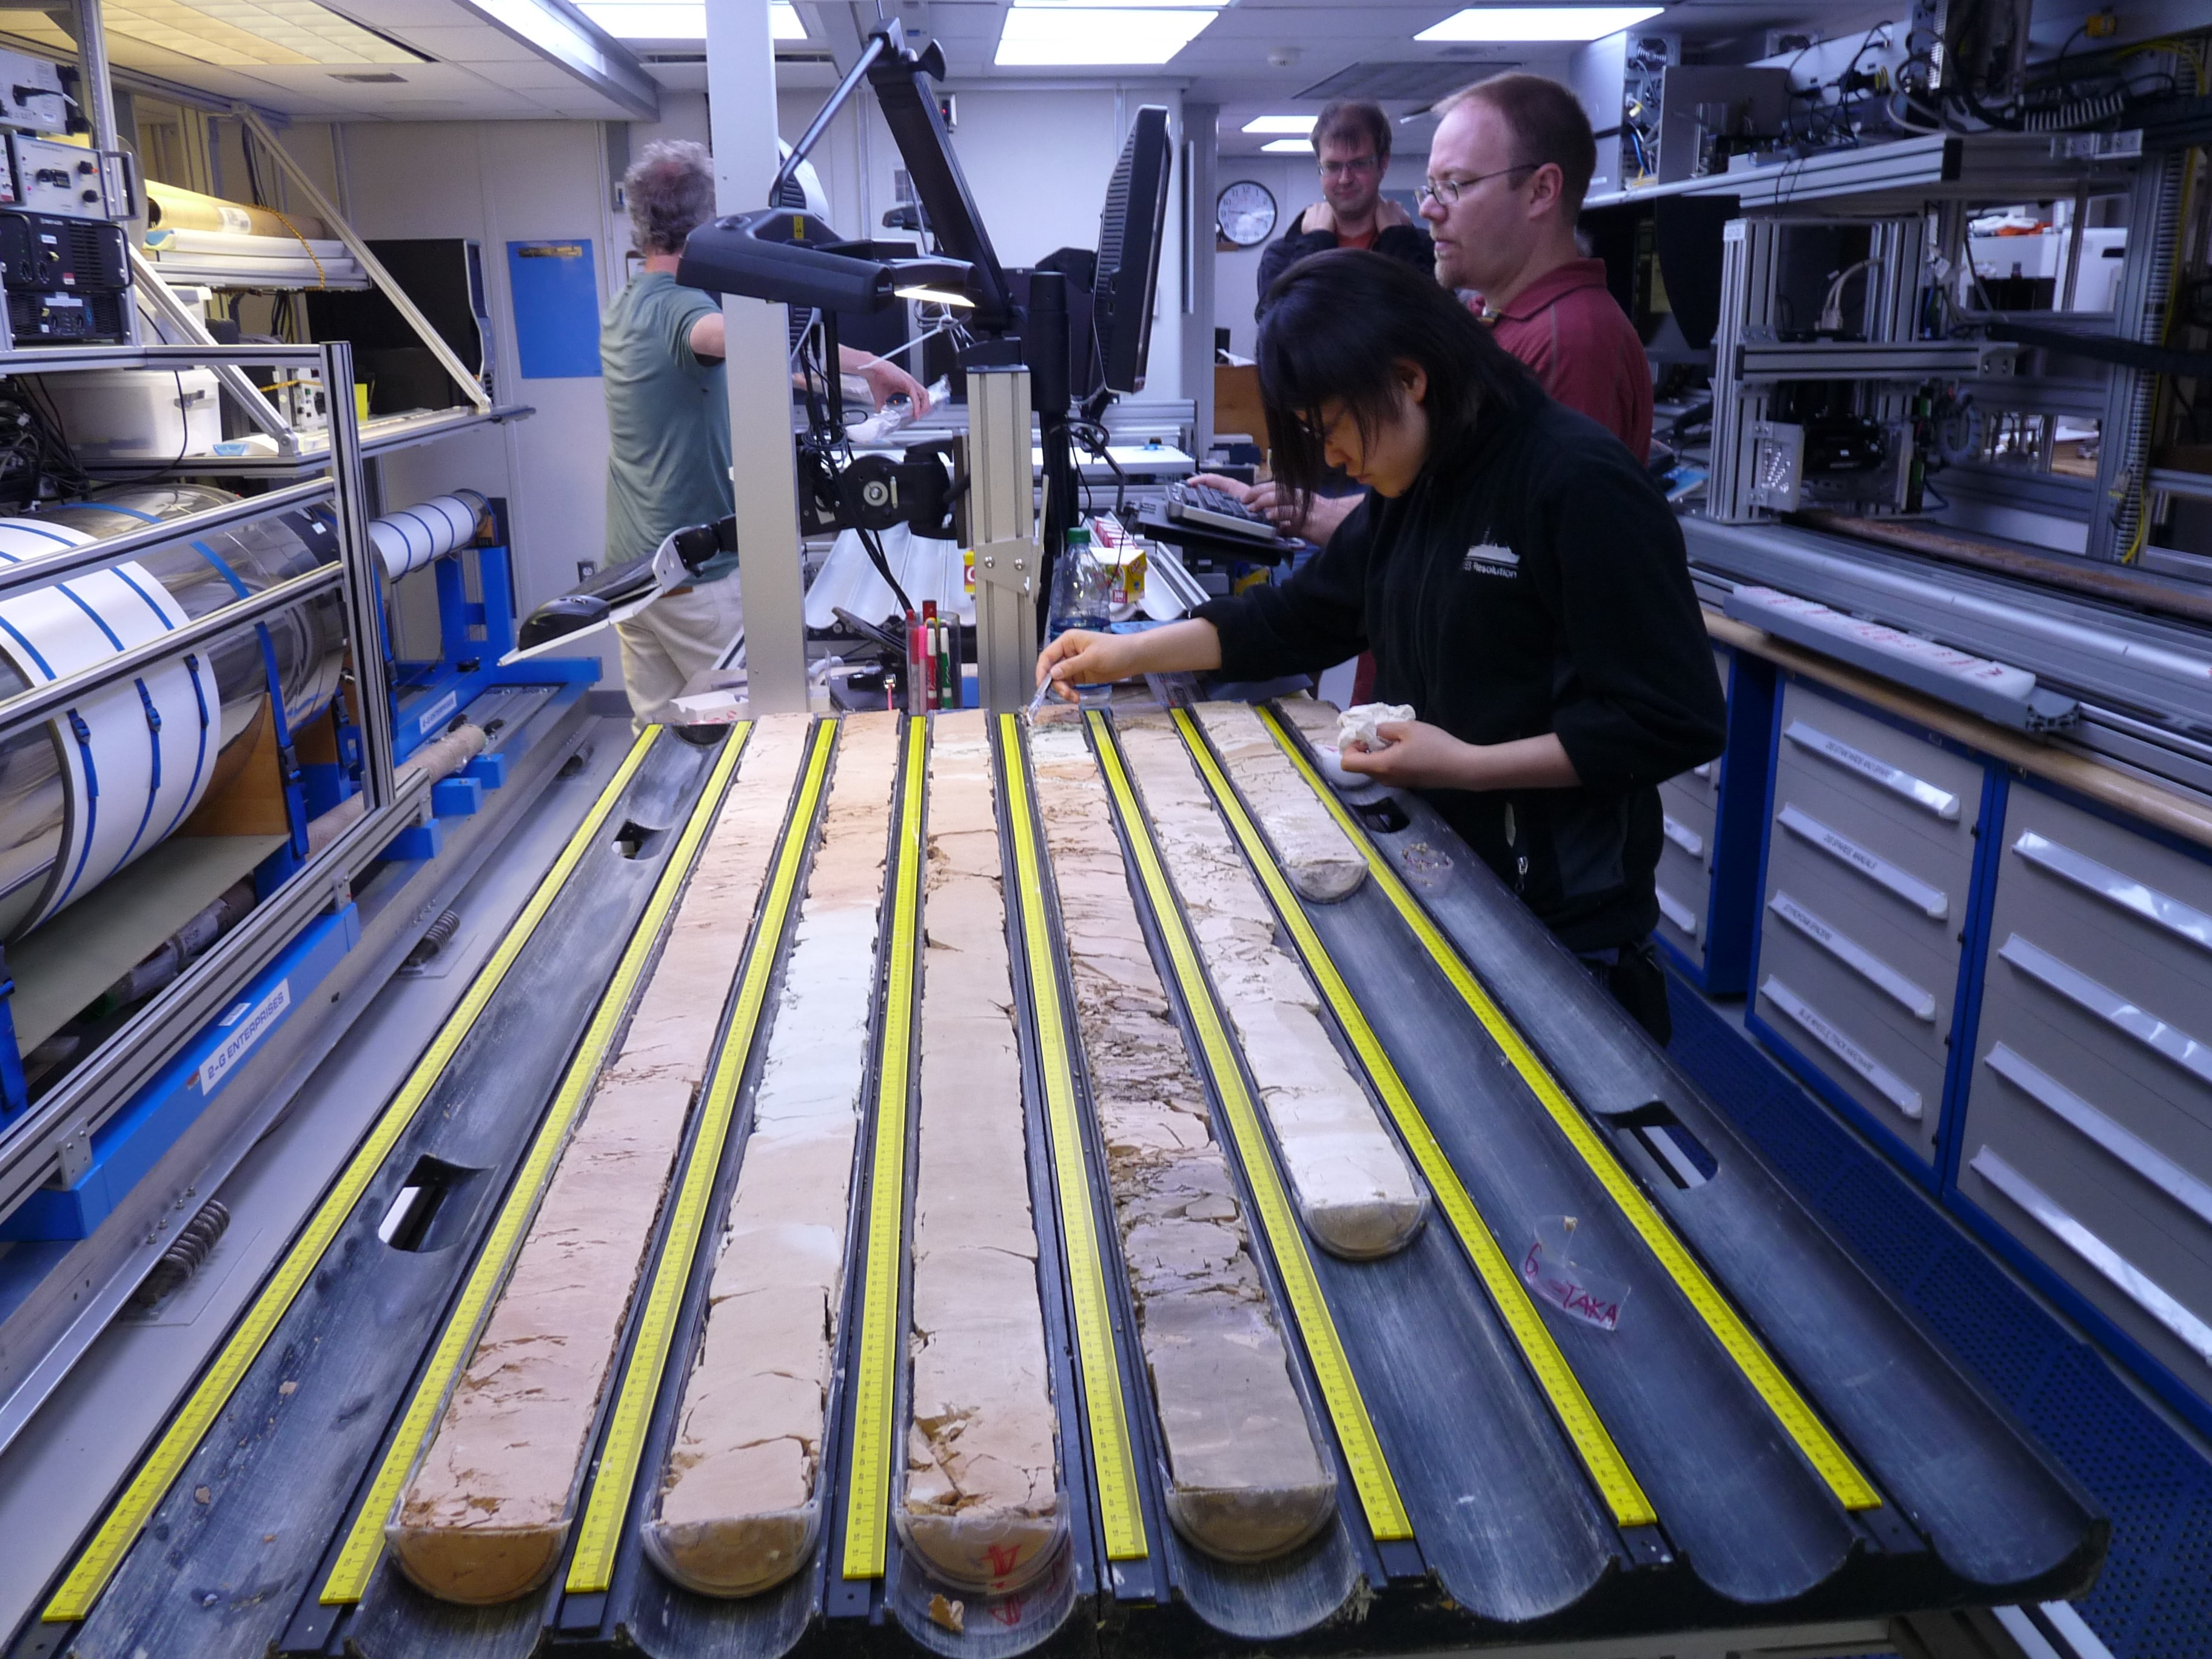 Researchers analysing ocean sediment samples.